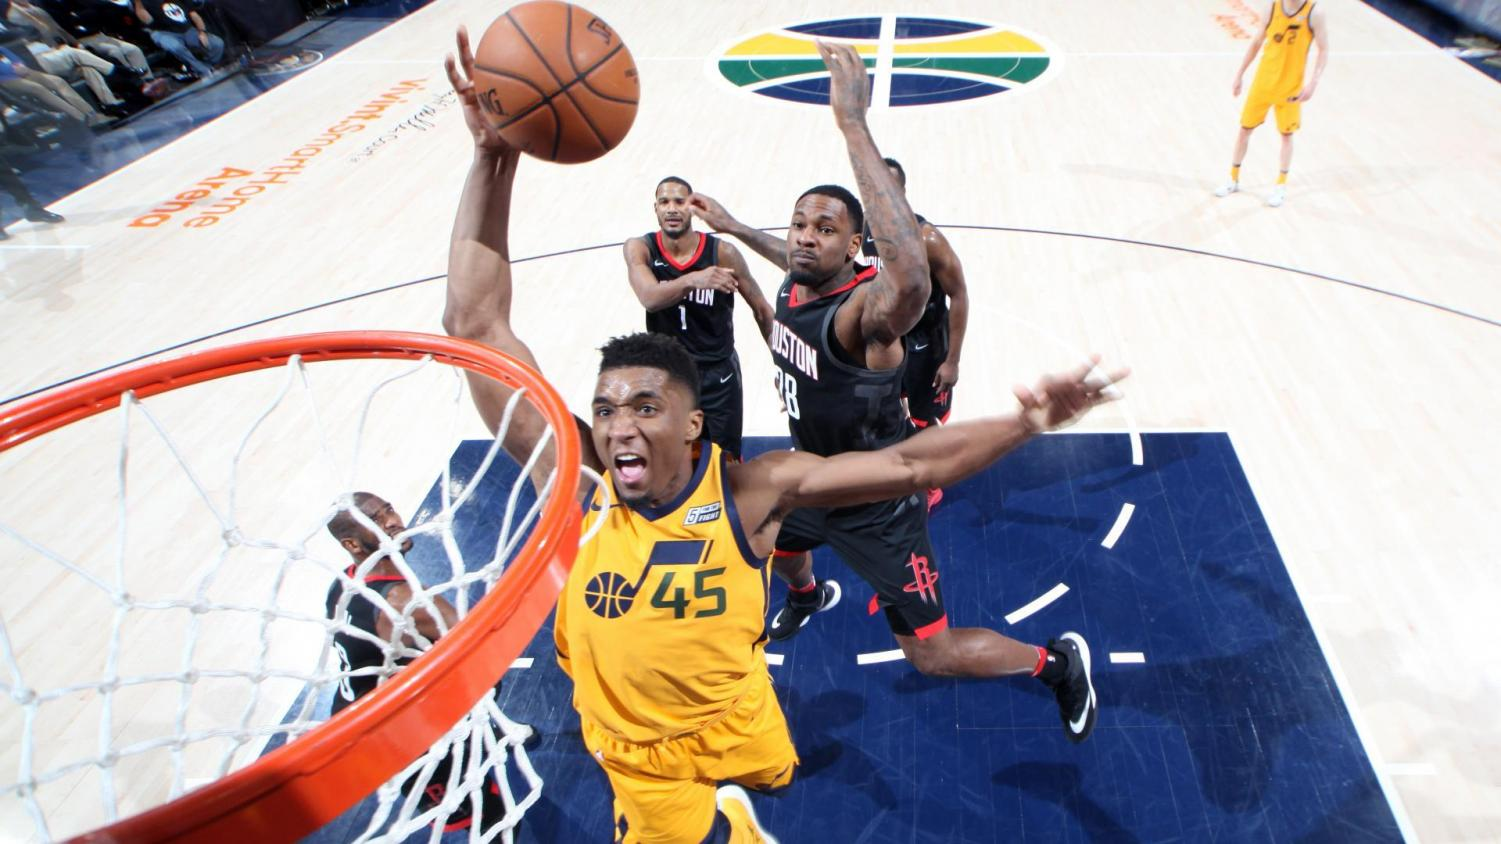 Donovan Mitchell slams down dunk with authority